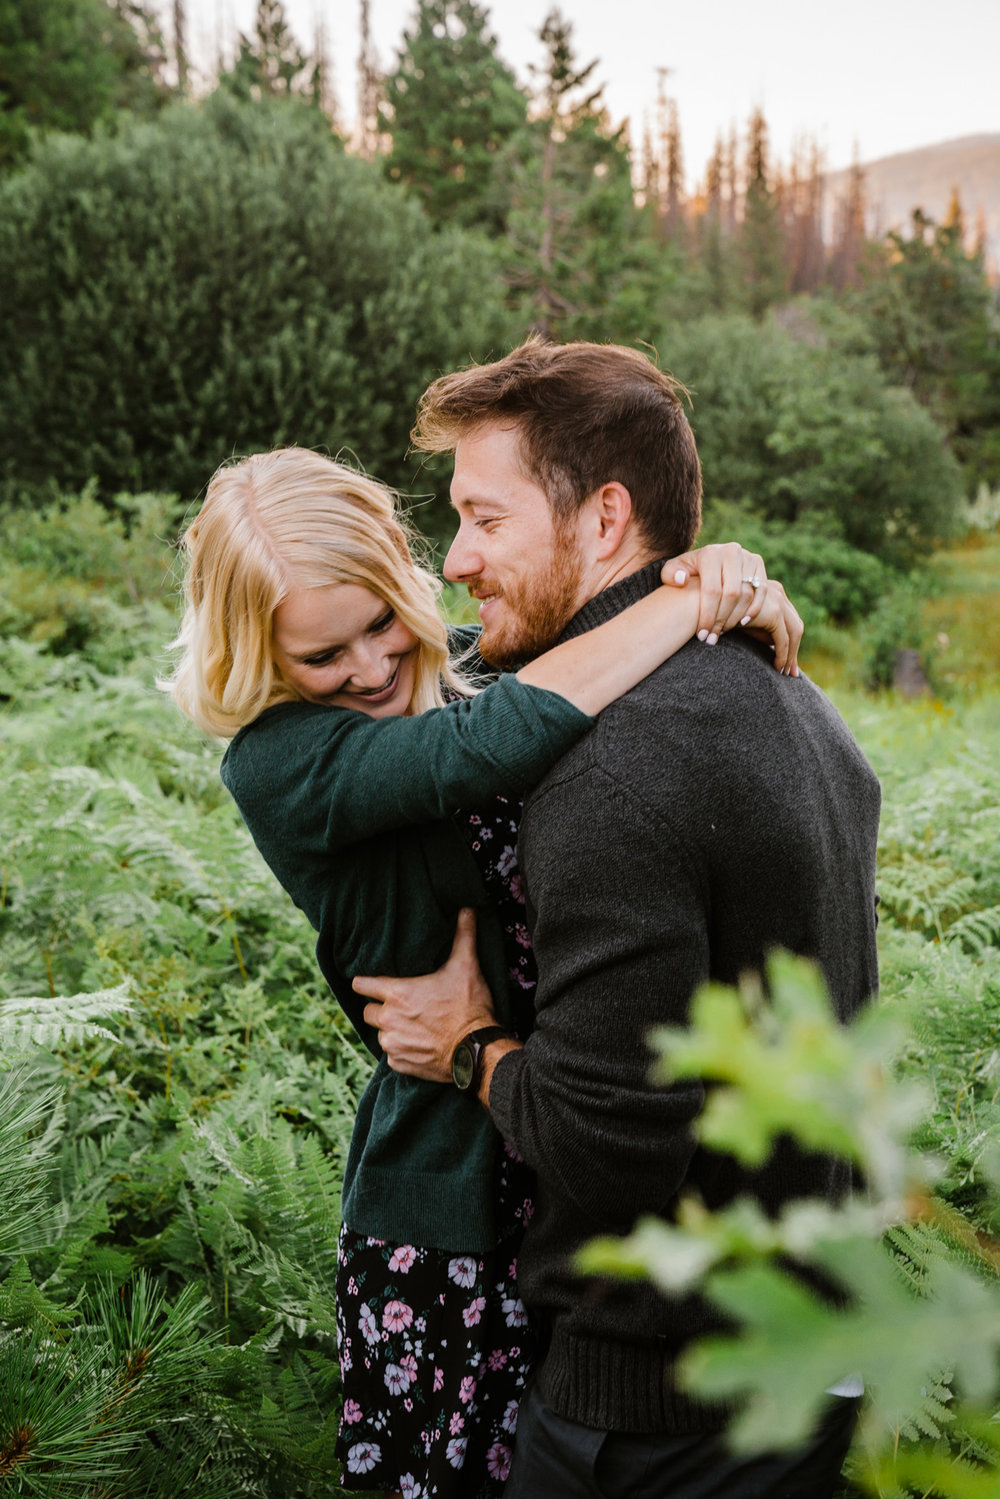 Shaver Lake Engagement Portraits - Meghan and Clay -  by Bessie Young Photography 2018 A7R2-38.jpg